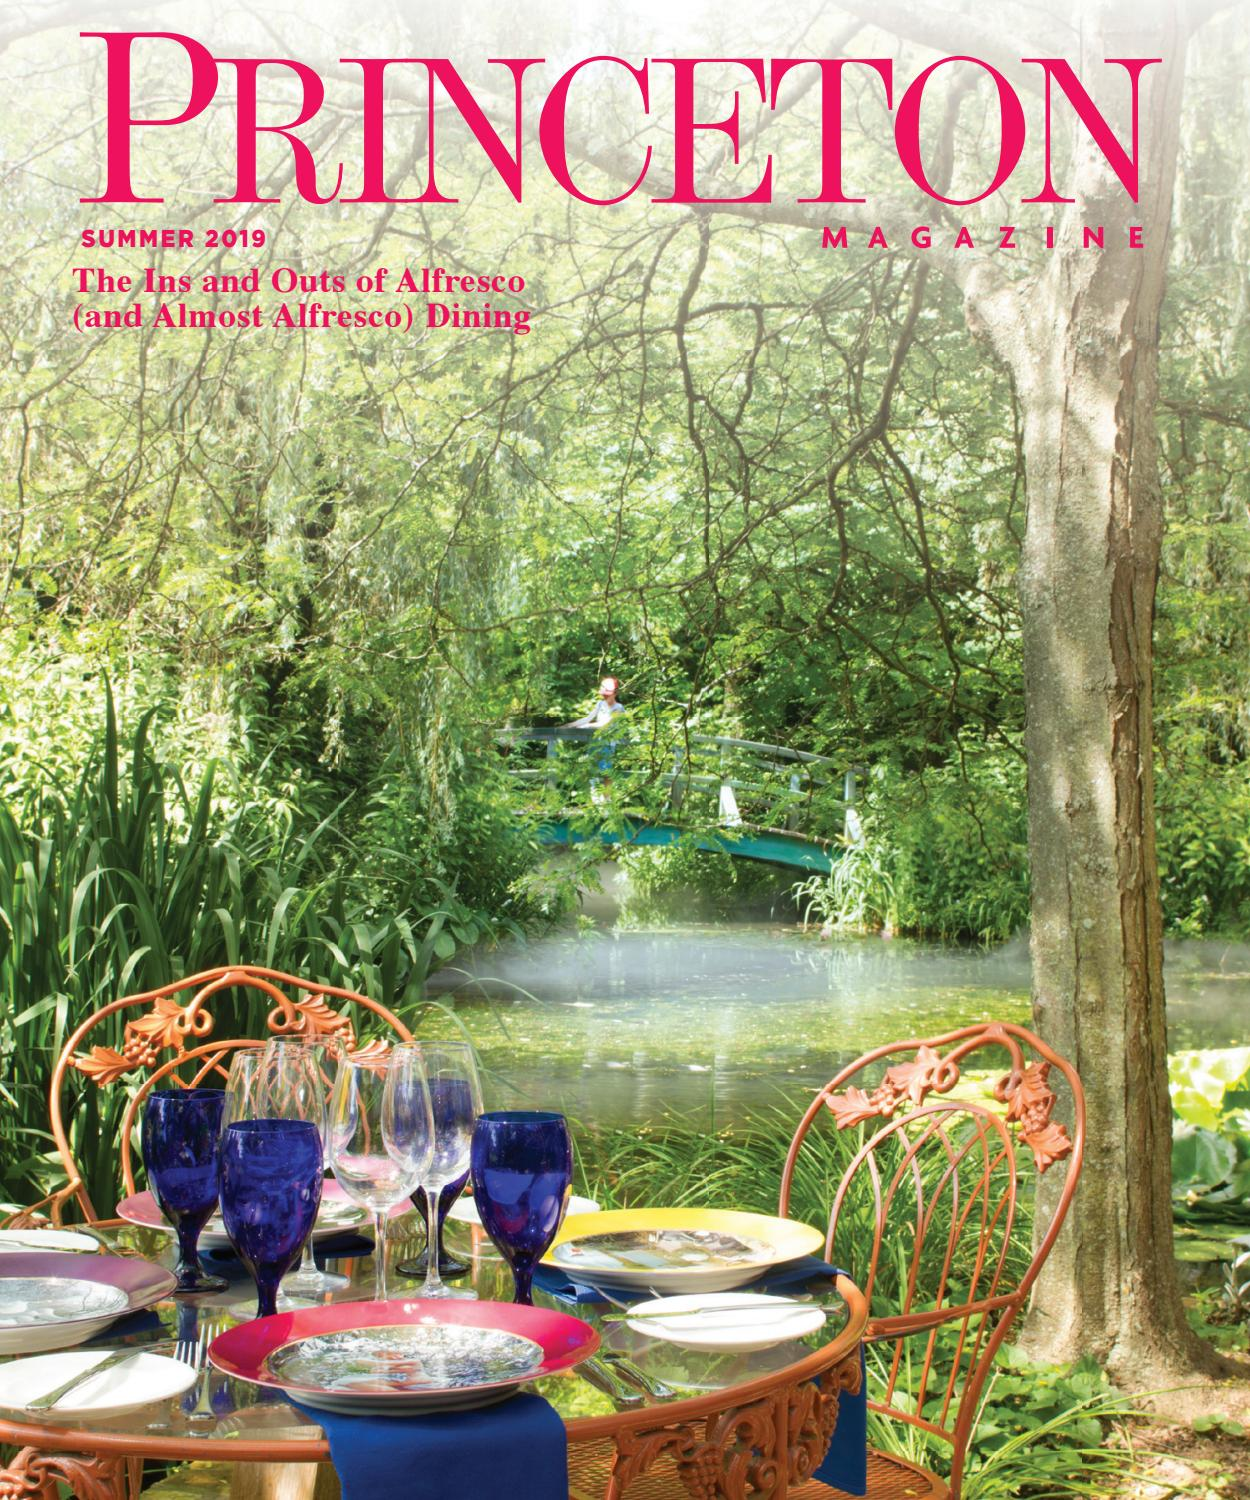 Princeton Magazine, Summer 2019 by Witherspoon Media Group